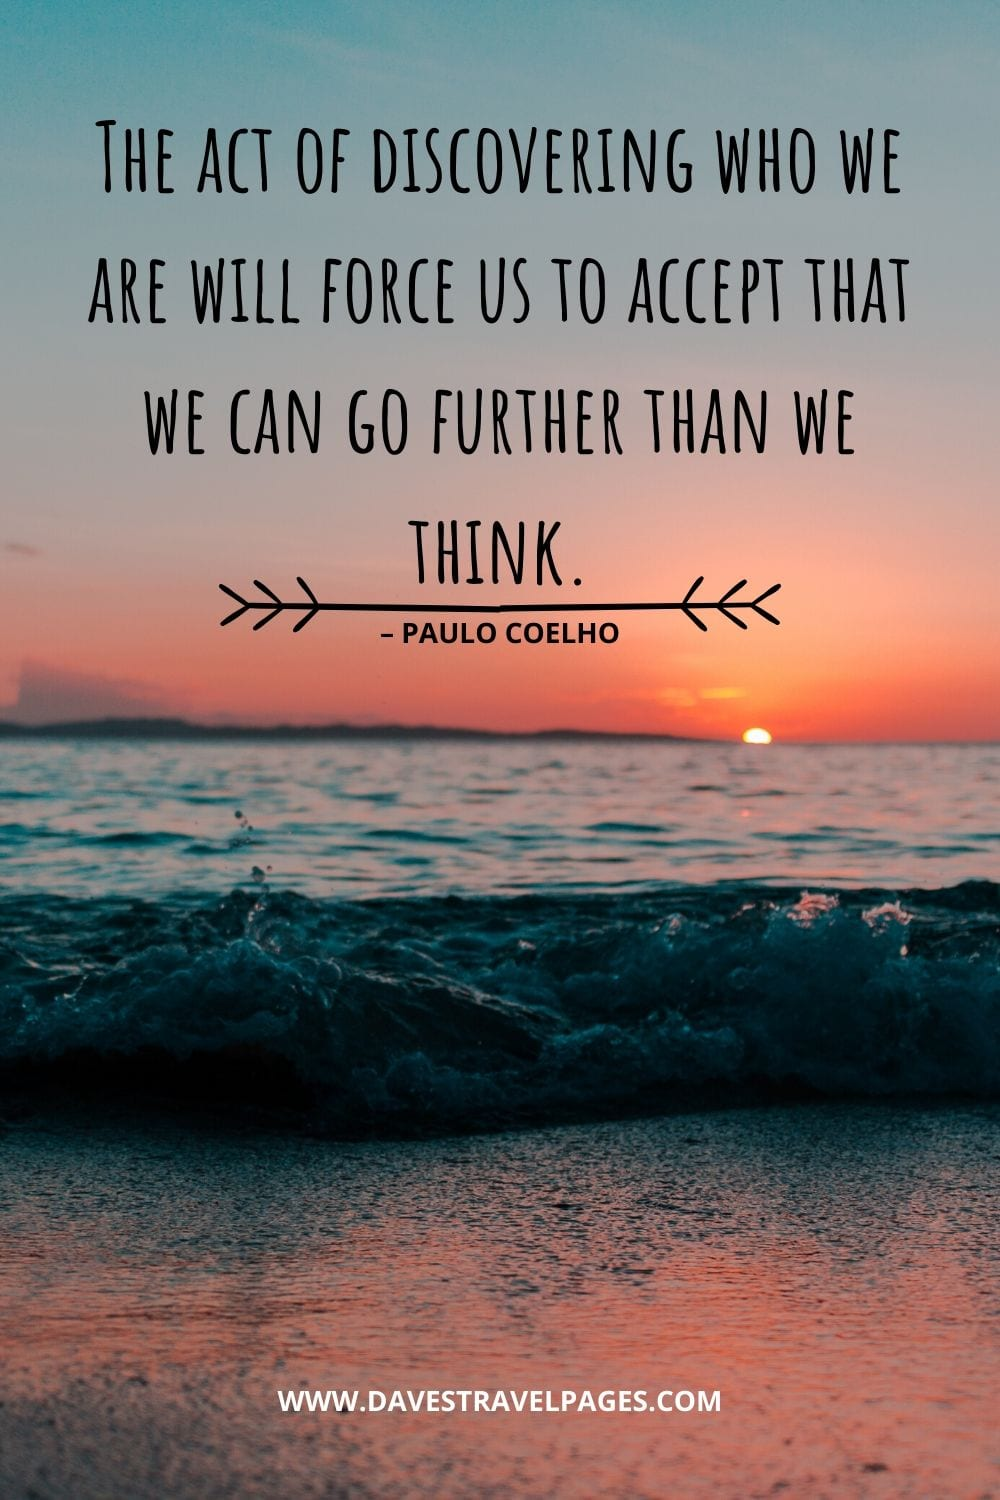 """The act of discovering who we are will force us to accept that we can go further than we think."" – Paulo Coelho Motivational Quote"